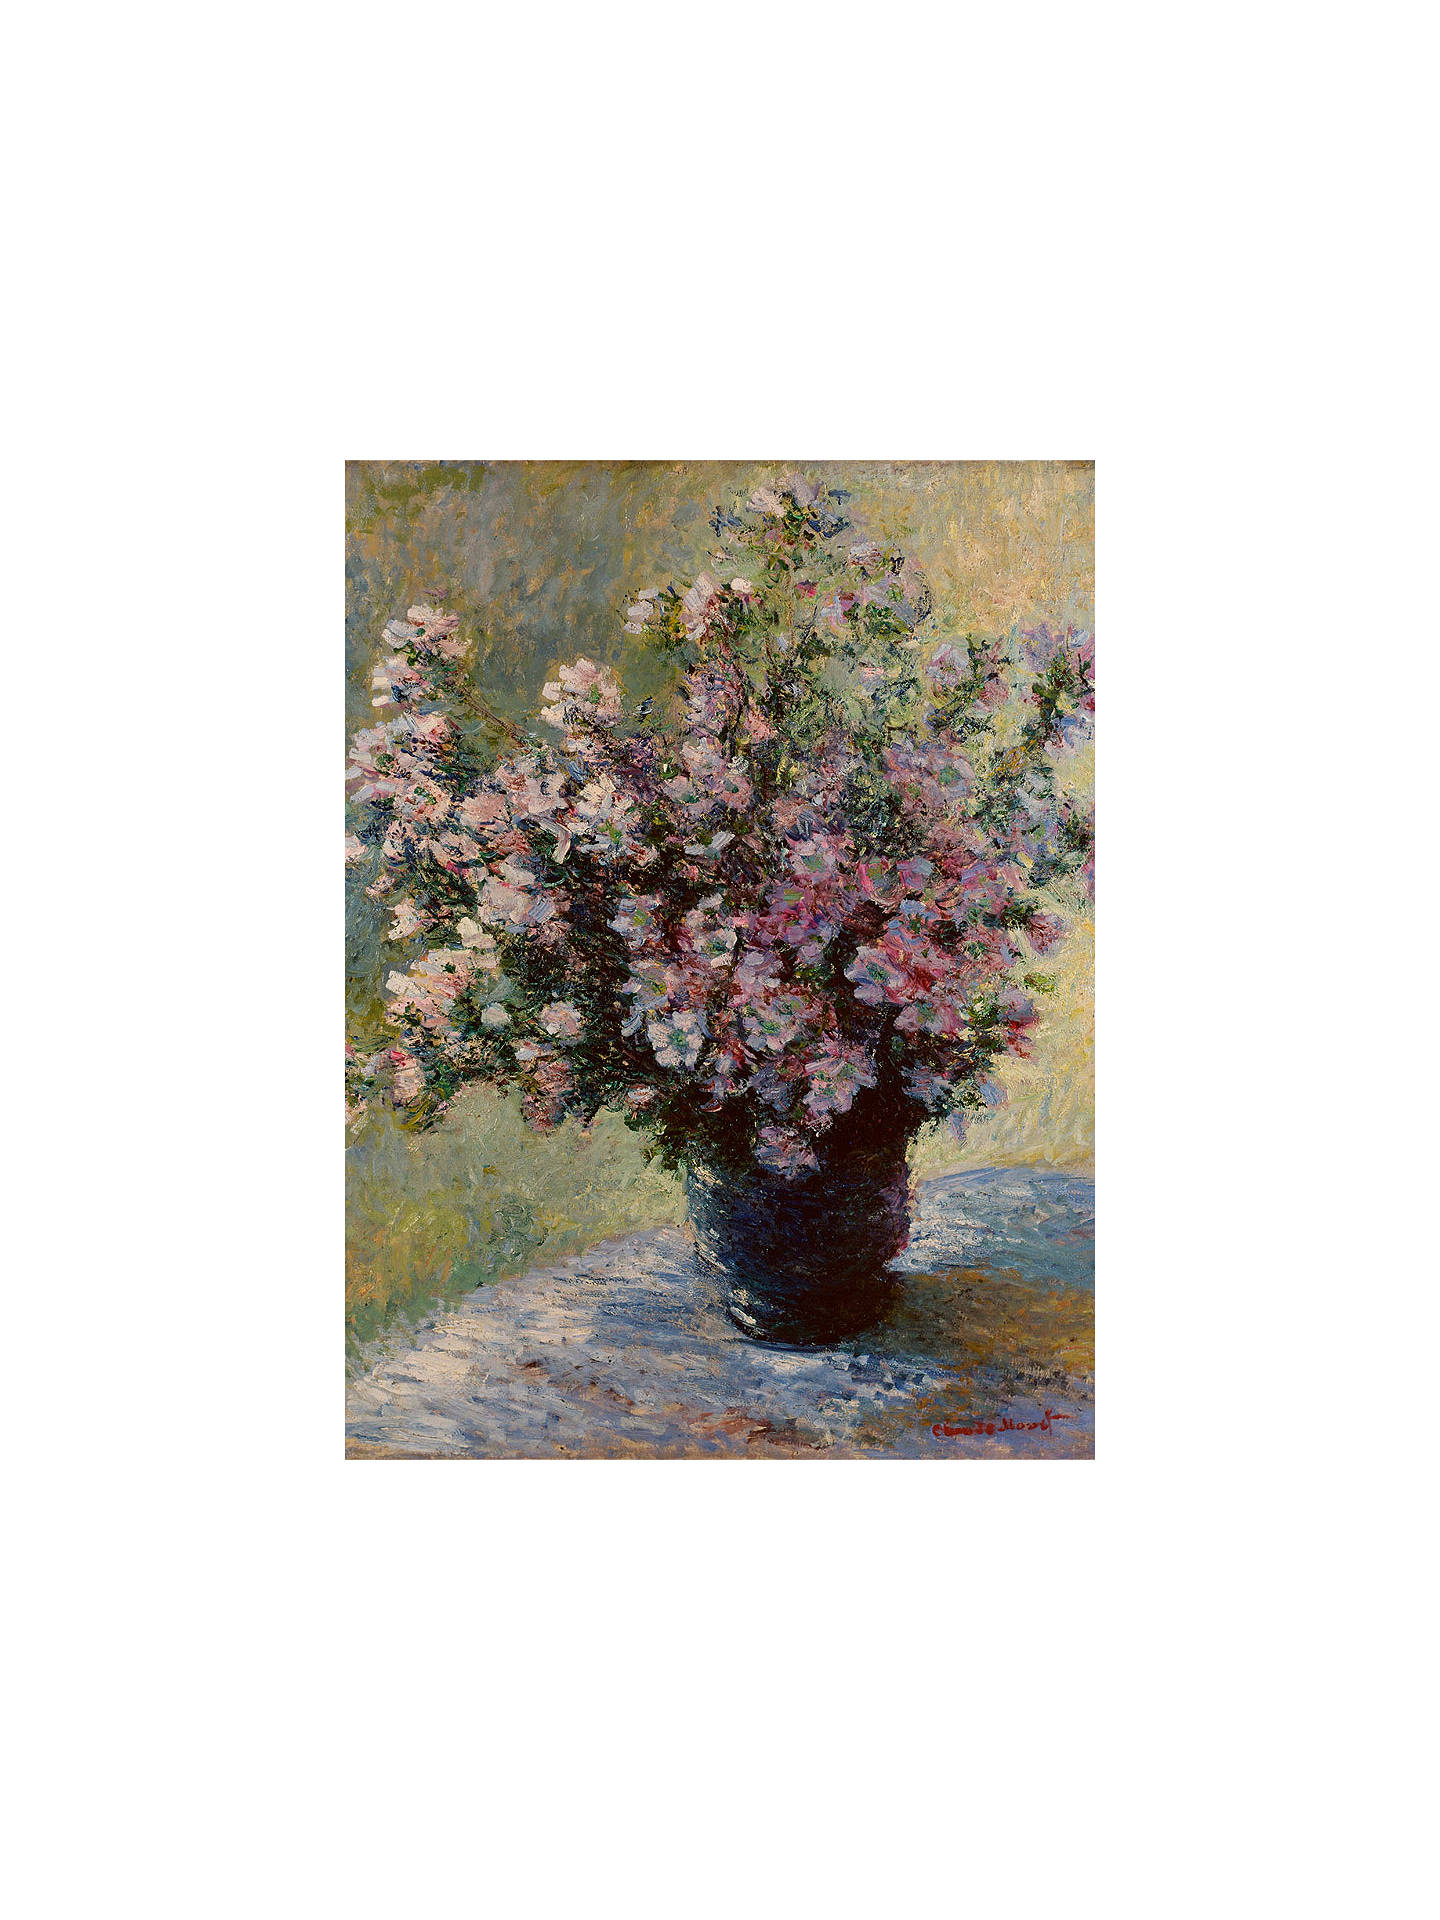 BuyThe Courtauld Gallery, Claude Monet - Vase of flowers 1881-2 Print, Stretched Canvas, 50 x 40cm Online at johnlewis.com